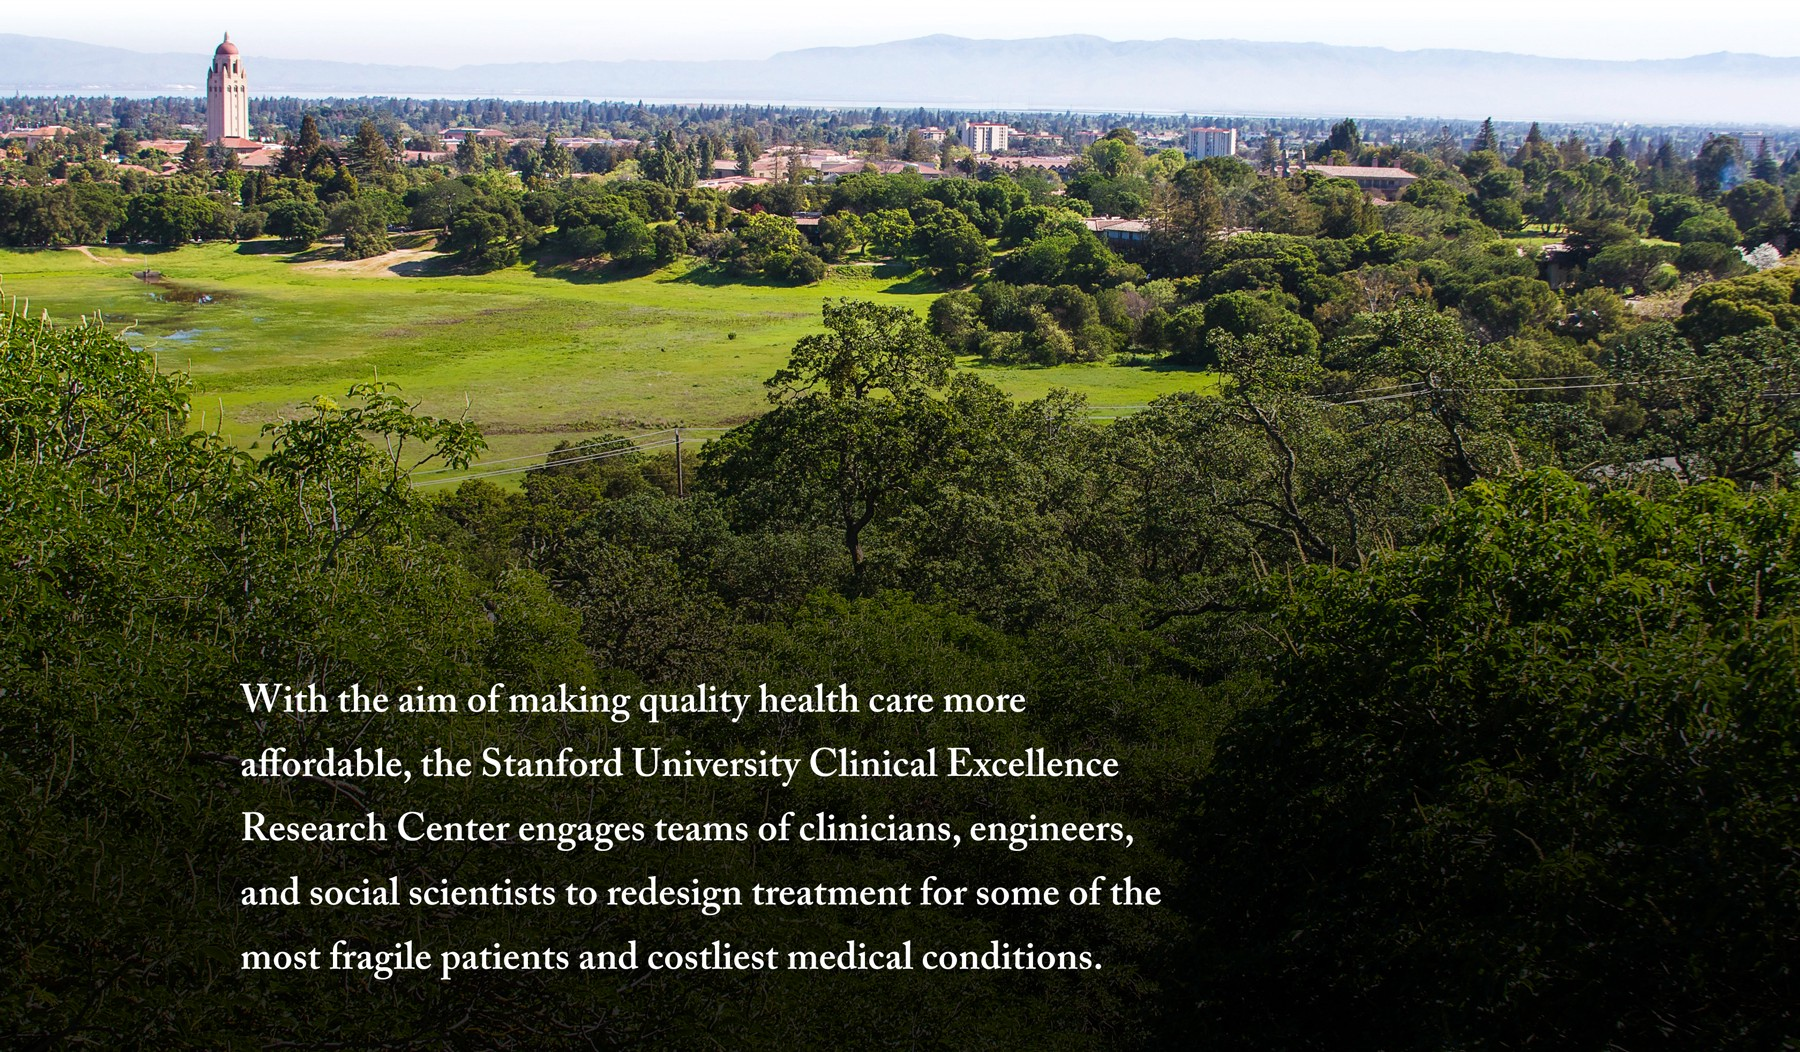 Designing More Affordable and Effective Health Care